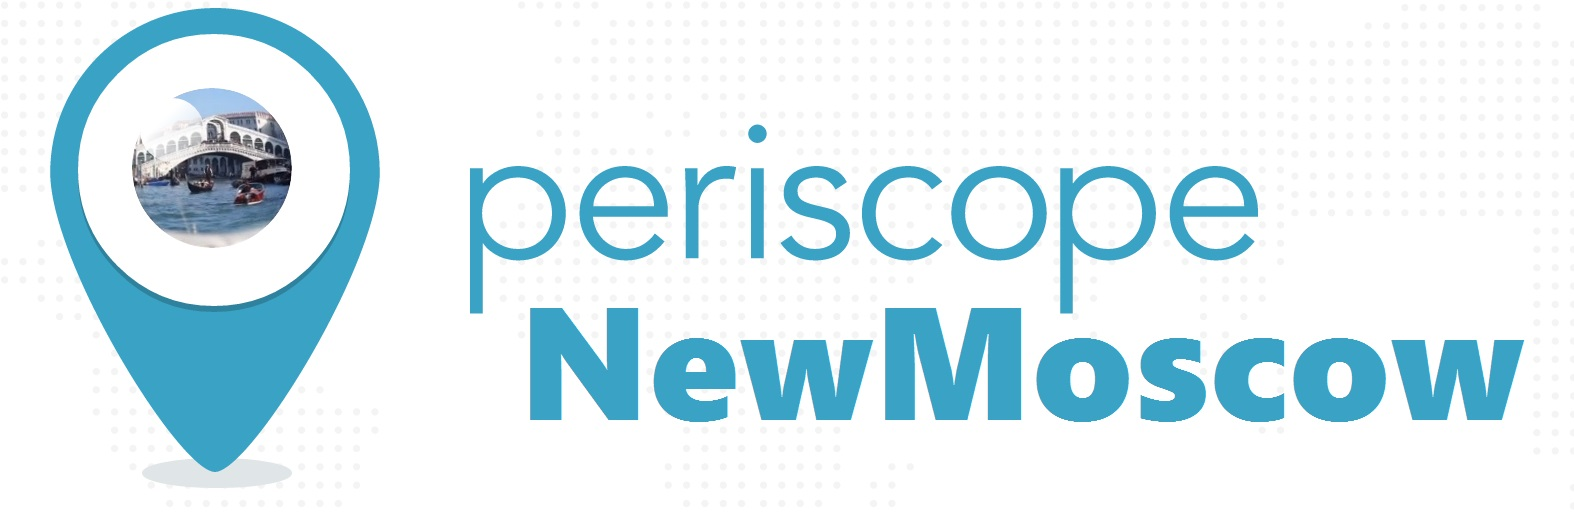 periscope.tv_newmoscow